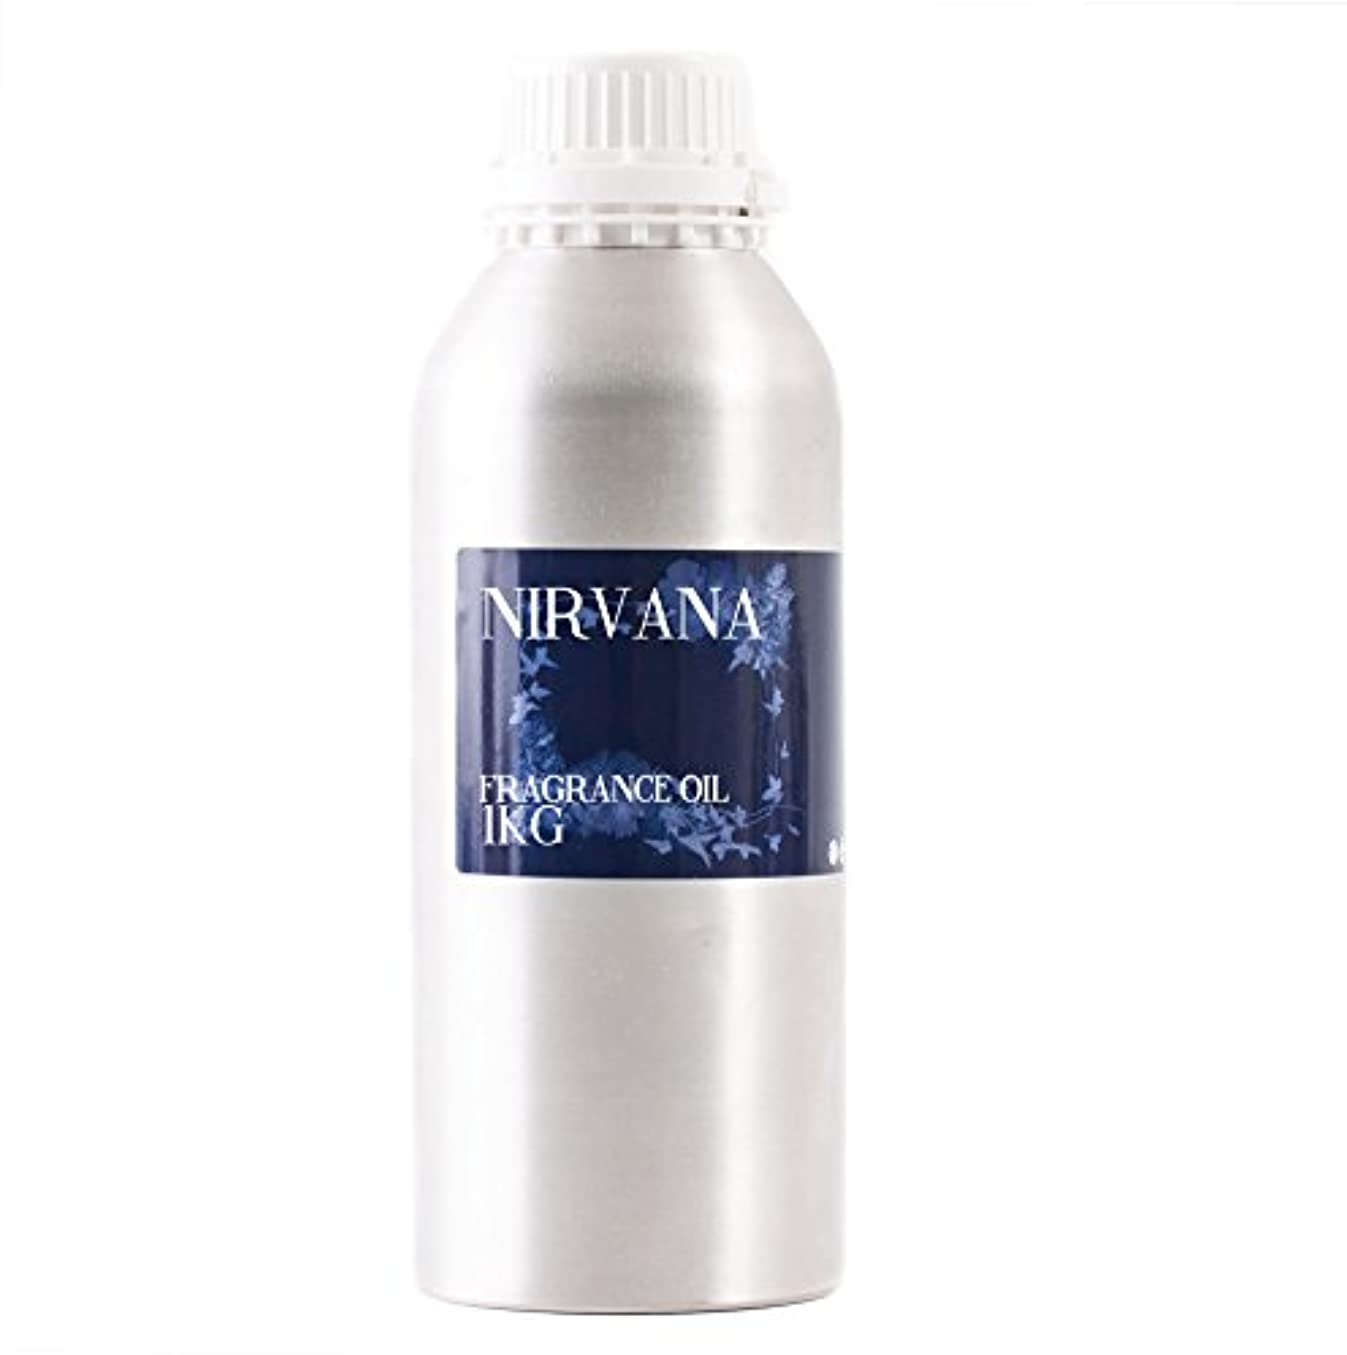 ゆでるジョブレオナルドダMystic Moments | Nirvana Fragrance Oil - 1Kg